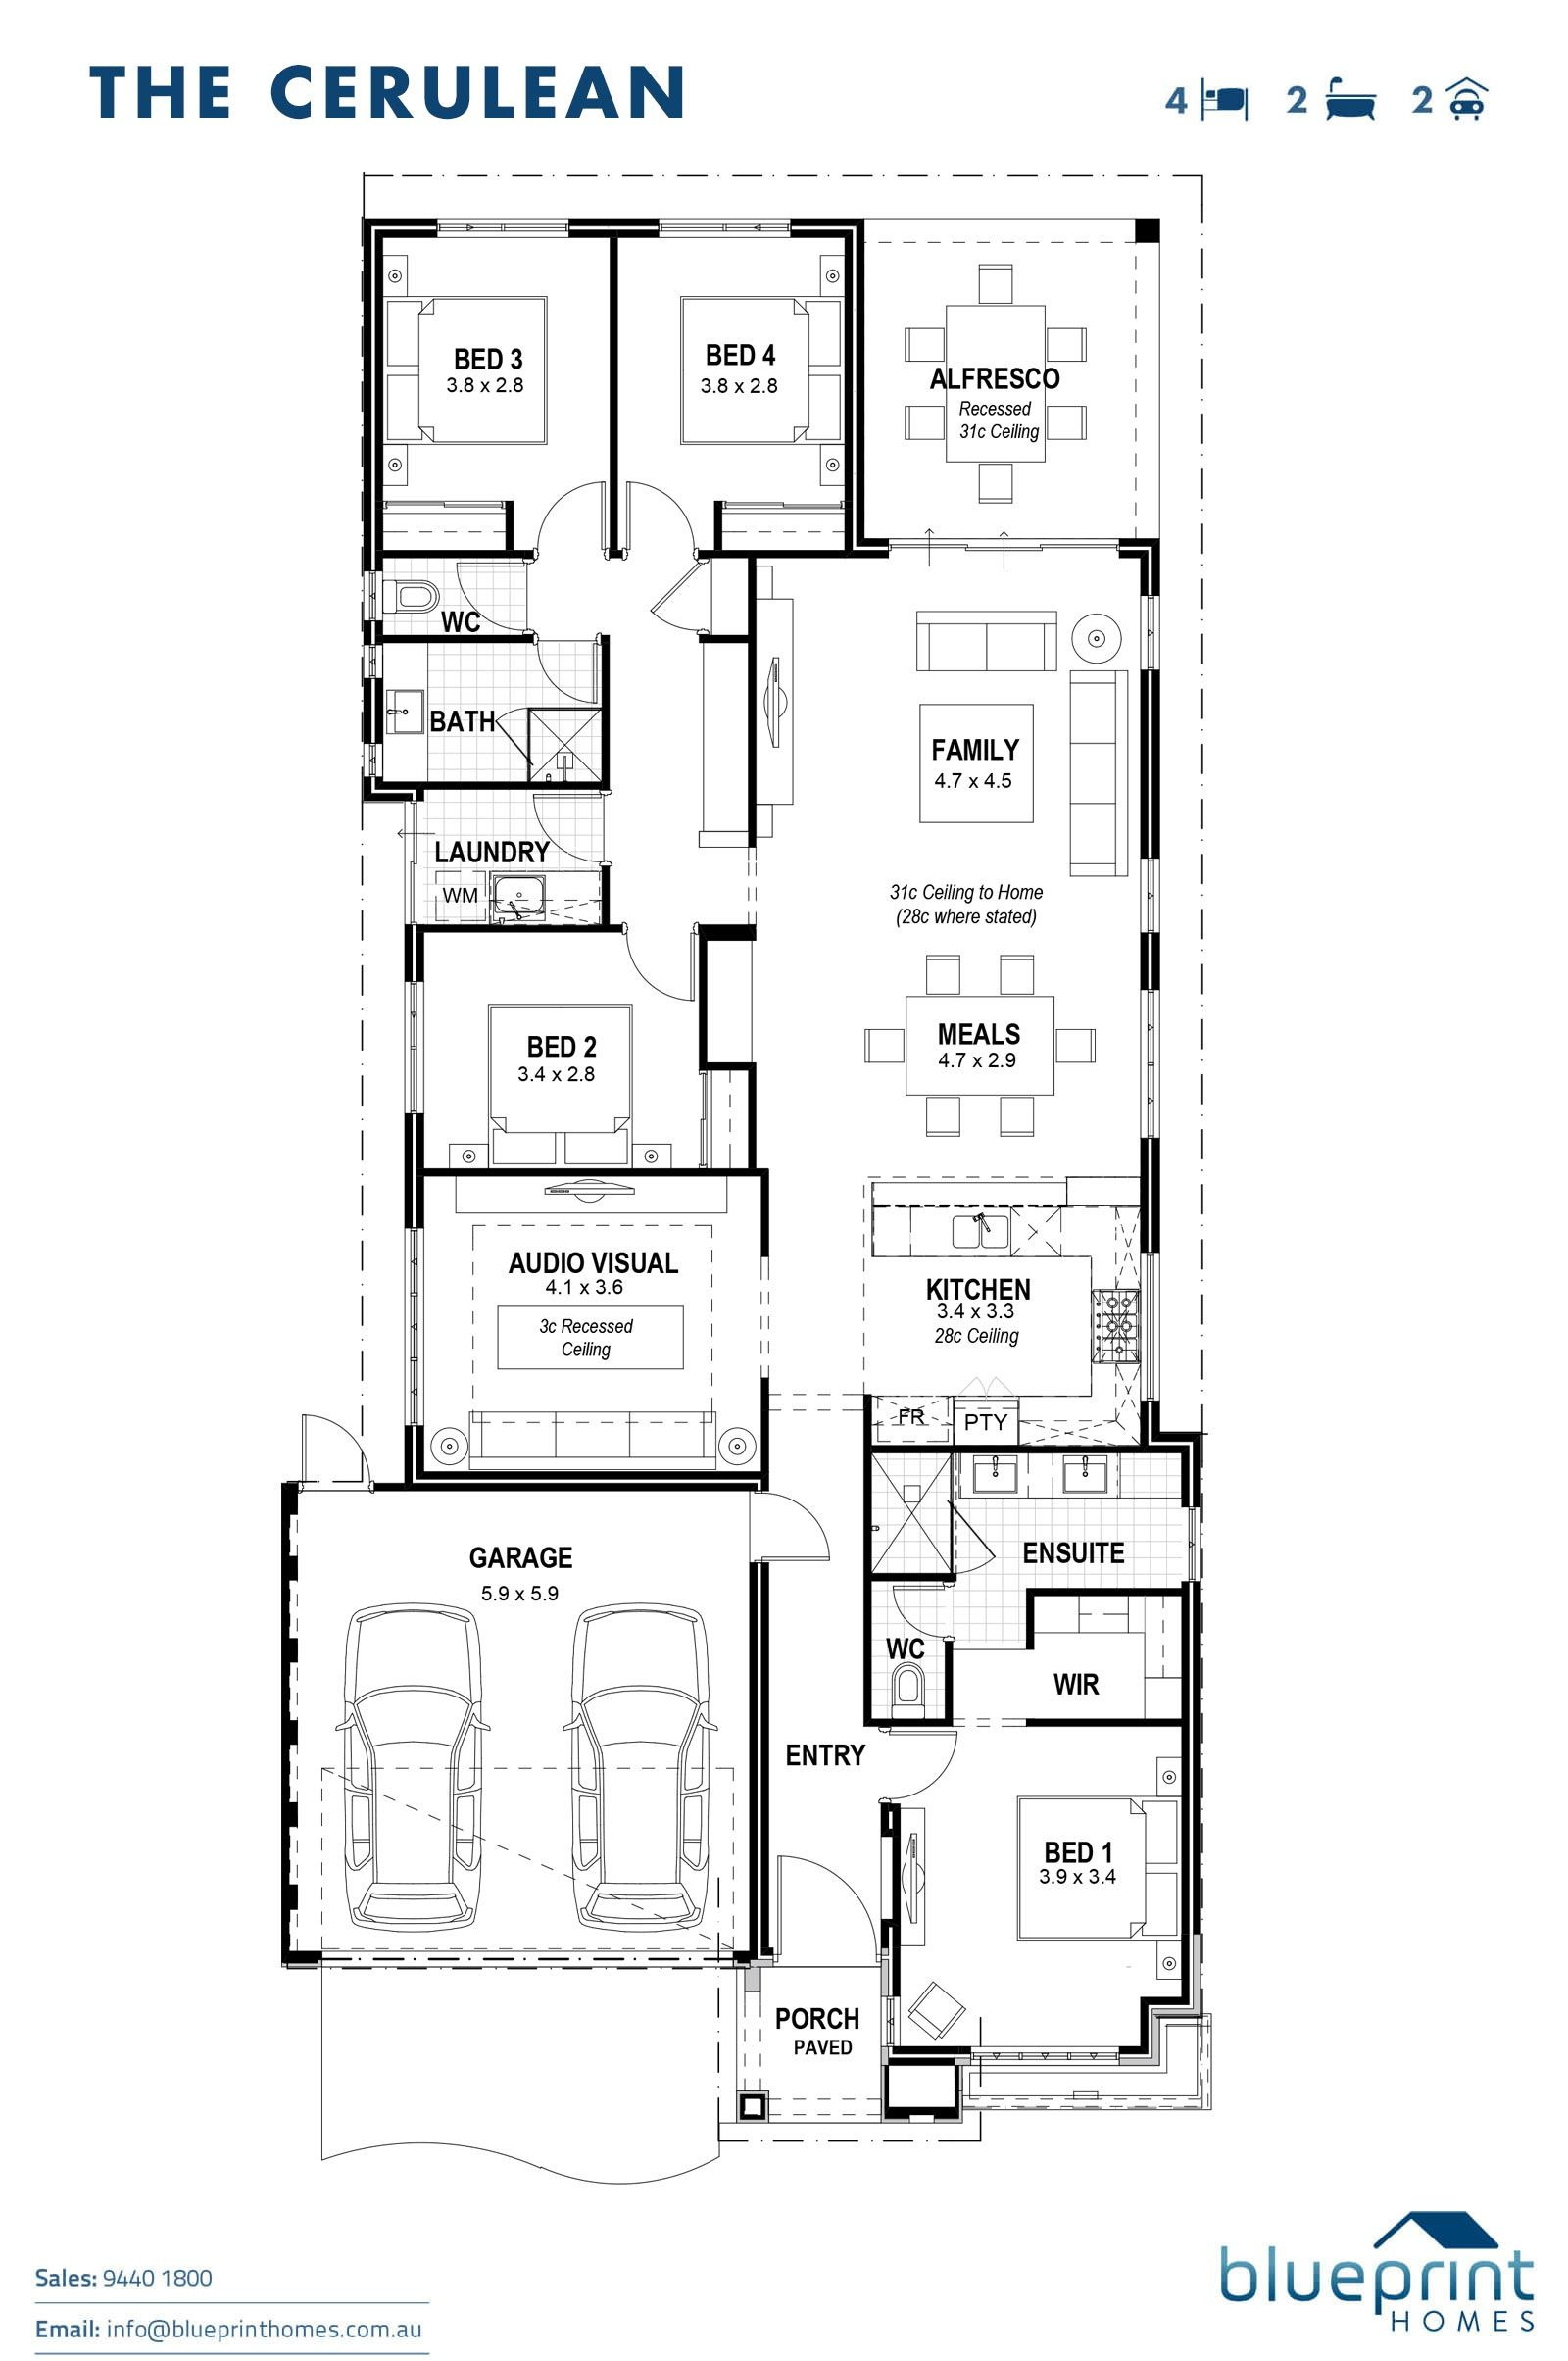 House Blueprints for Sale Awesome Ex Display Homes Perth Home Designs